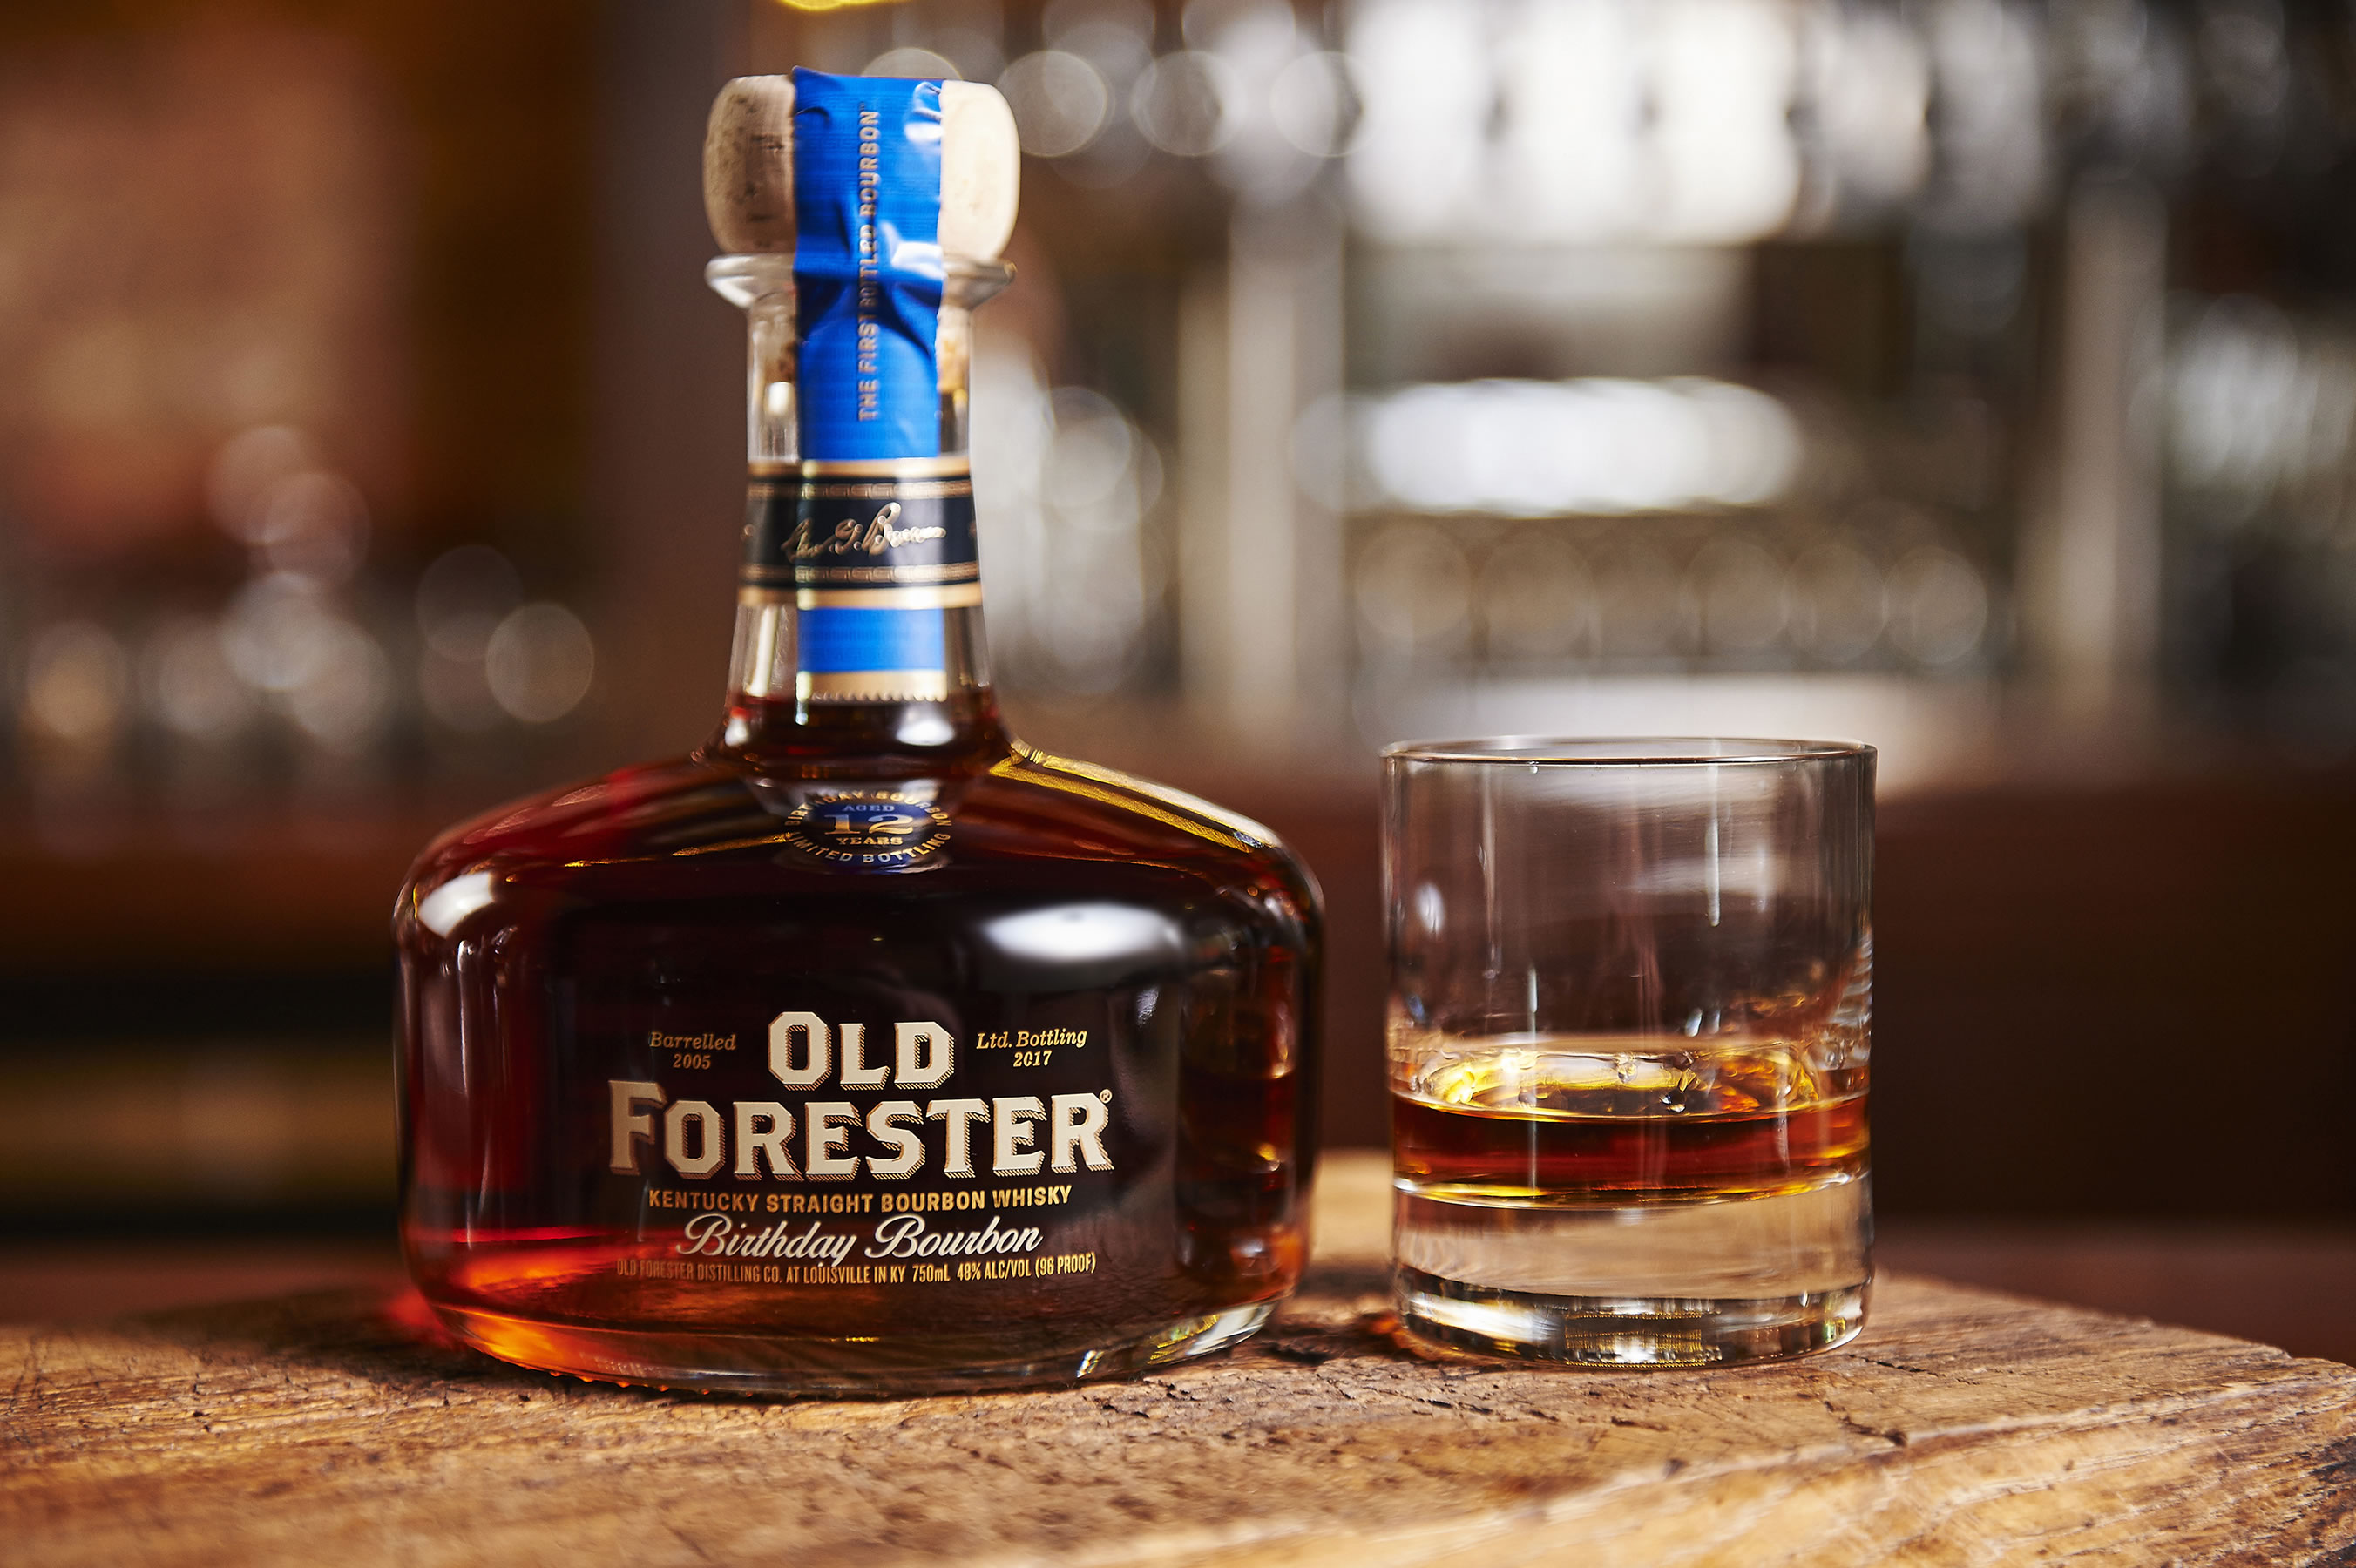 2017 Old Forester Birthday Bourbon Review